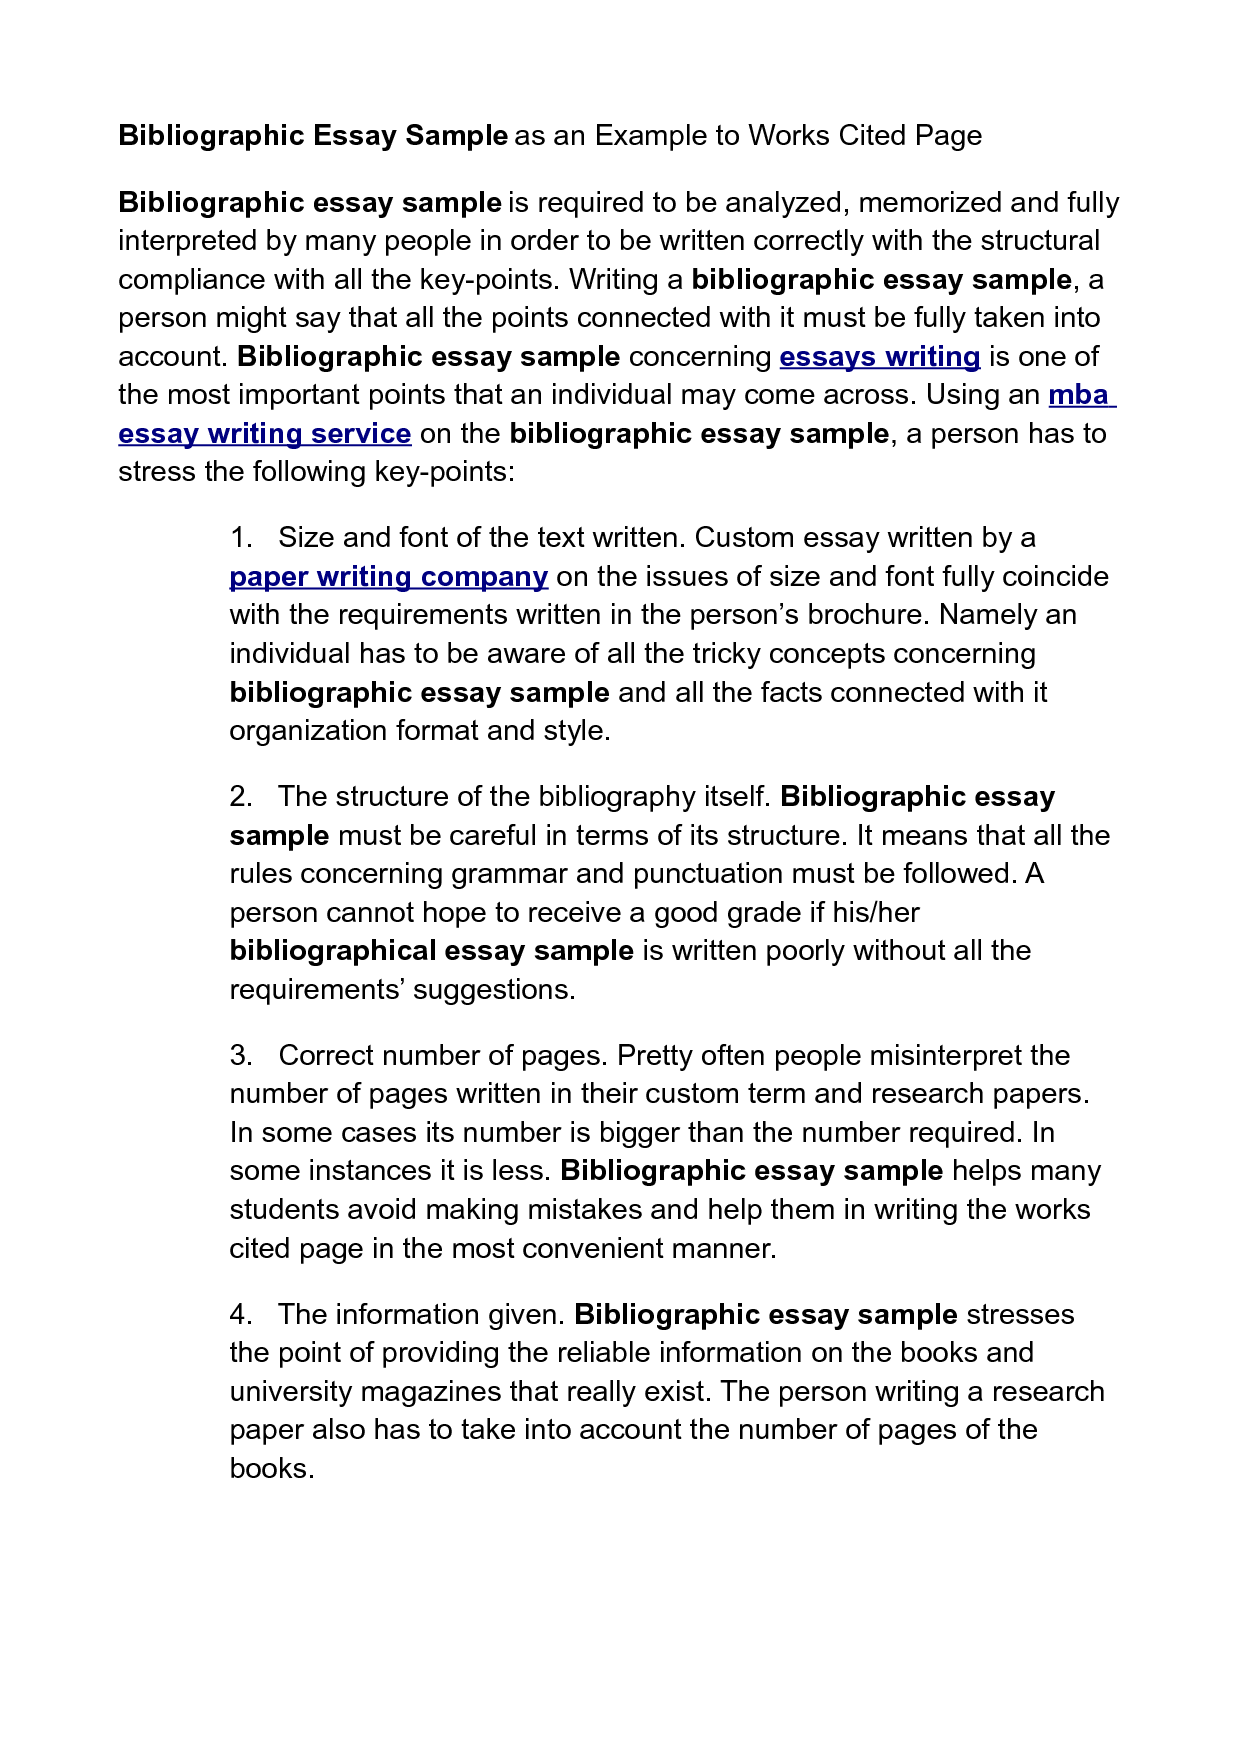 005 Sample Persuasive Essay With Works Cited Example Of Mla L How To Cite Work In Stupendous An Nber Working Paper A Web Source Full